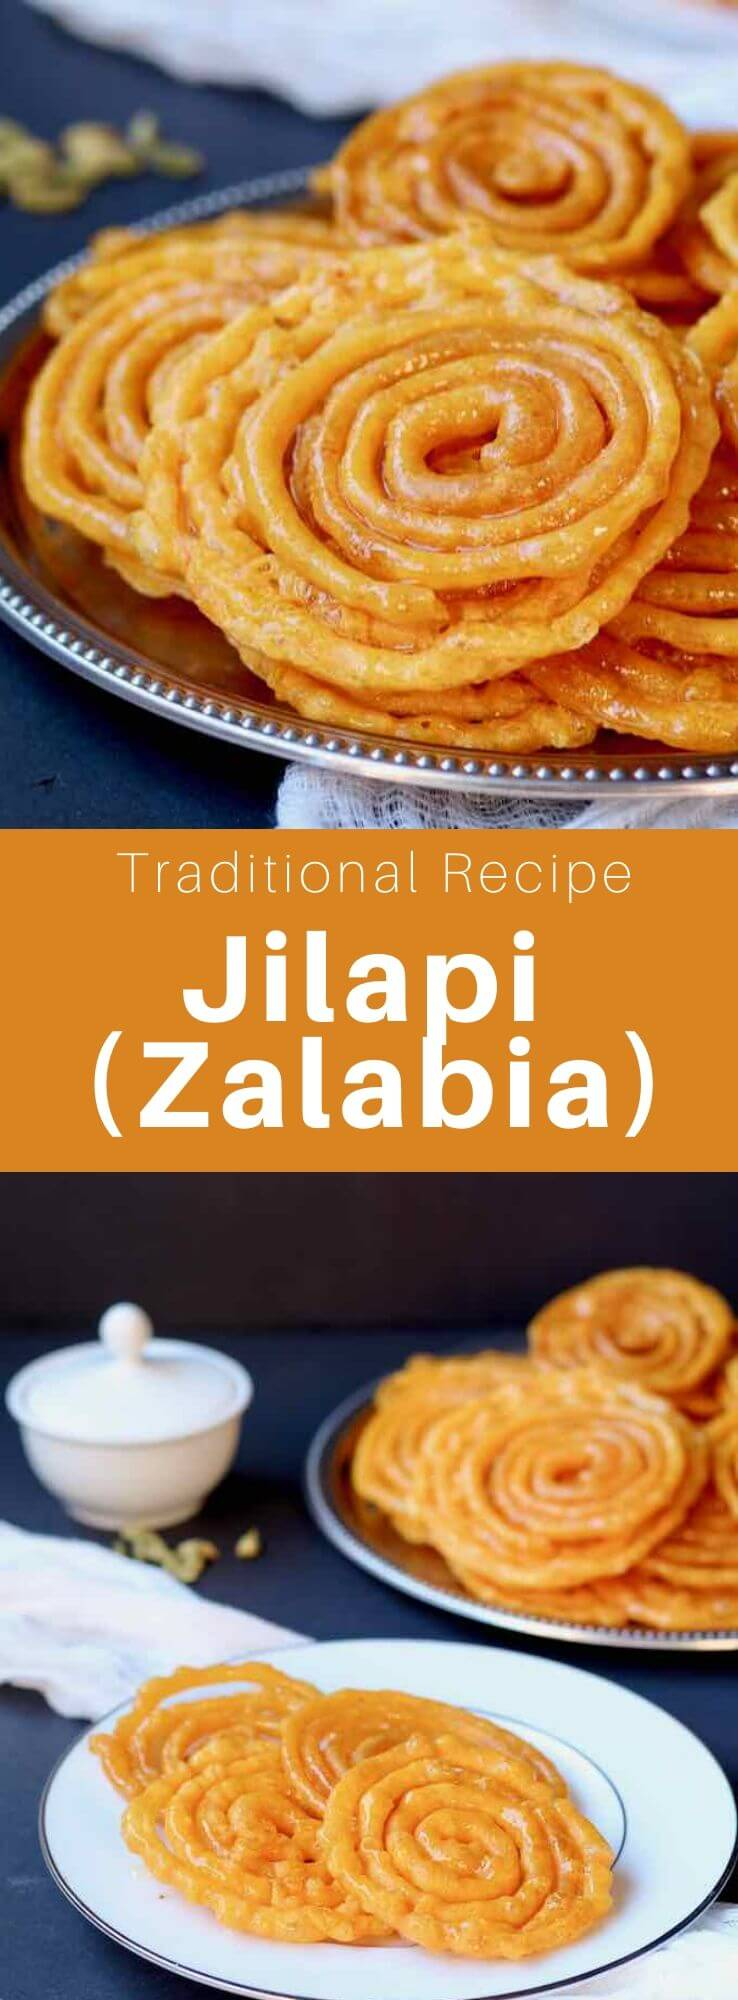 Jilapi is a traditional fried sweet pastry from the Indian continent, that is also popular in the Middle East and North Africa. #India #SriLanka #Bangladesh #Nepal #NorthAfrica #MiddleEast #WorldCuisine #196flavors